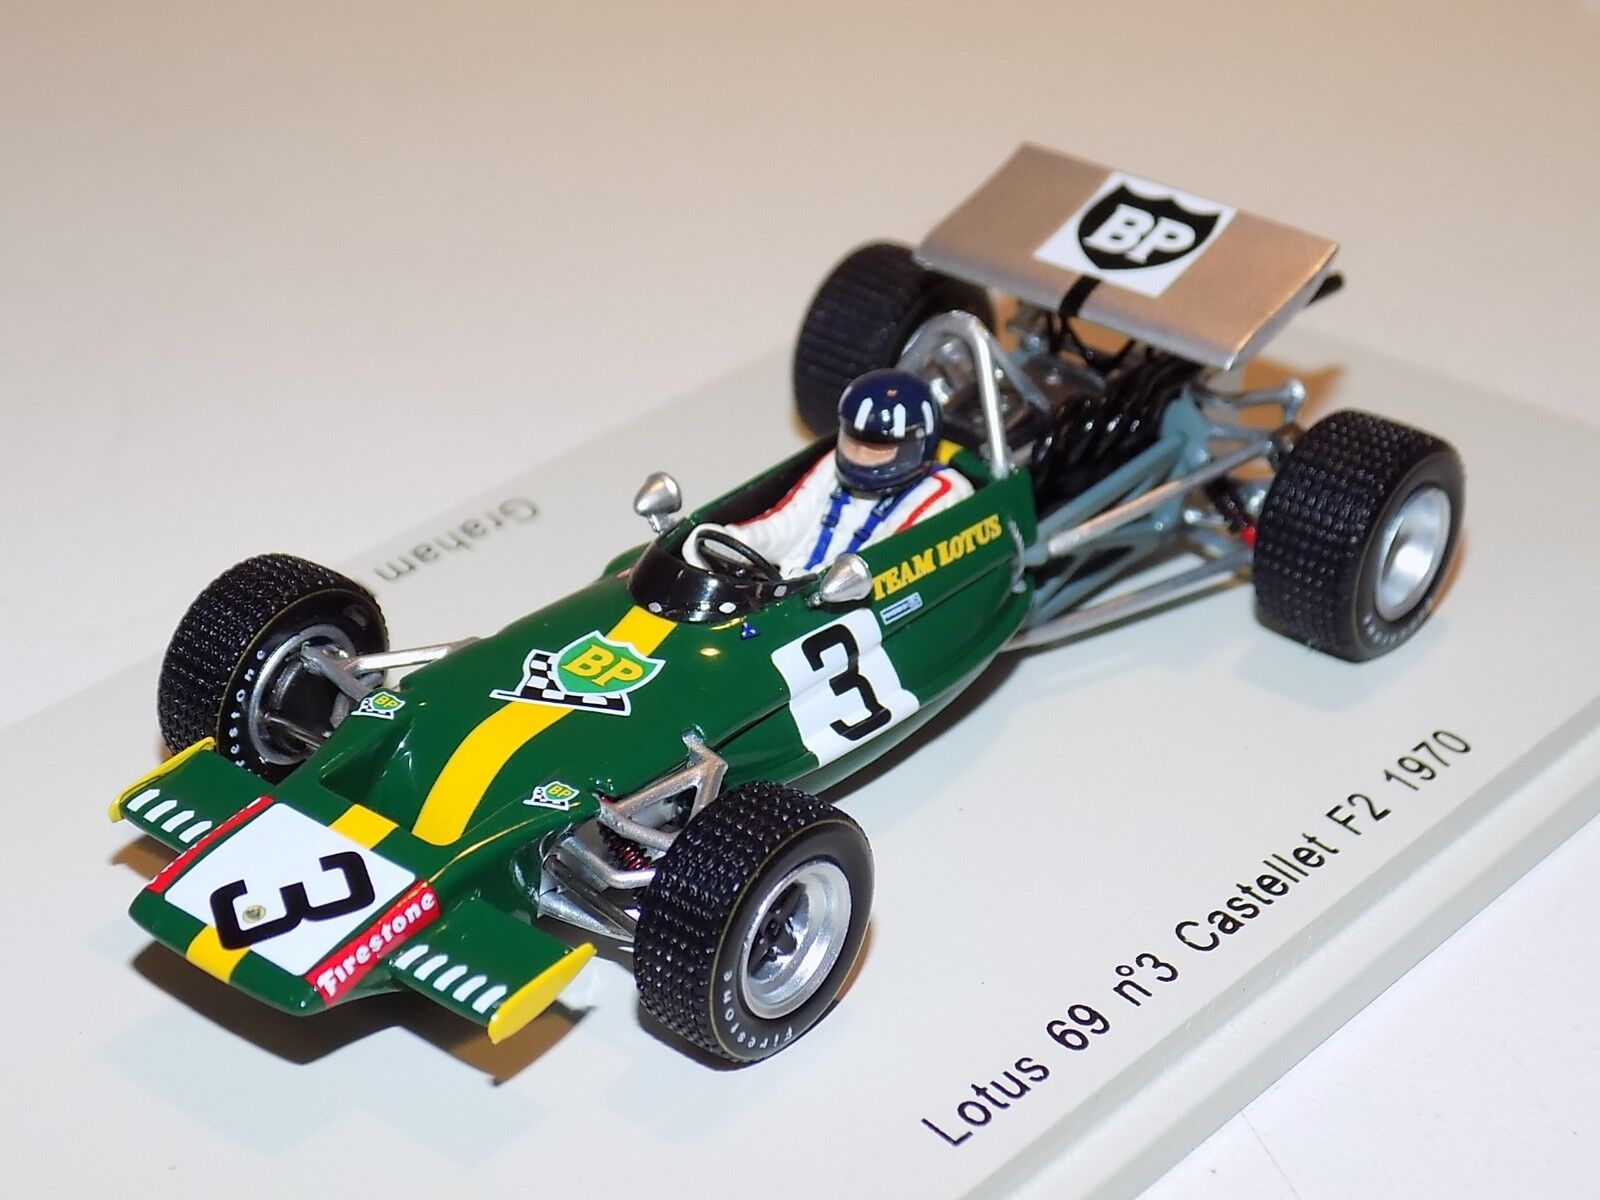 1 43 Spark Lotus 69 F2 car Castellet    F2 1970 Graham Hill S2146 0f0719